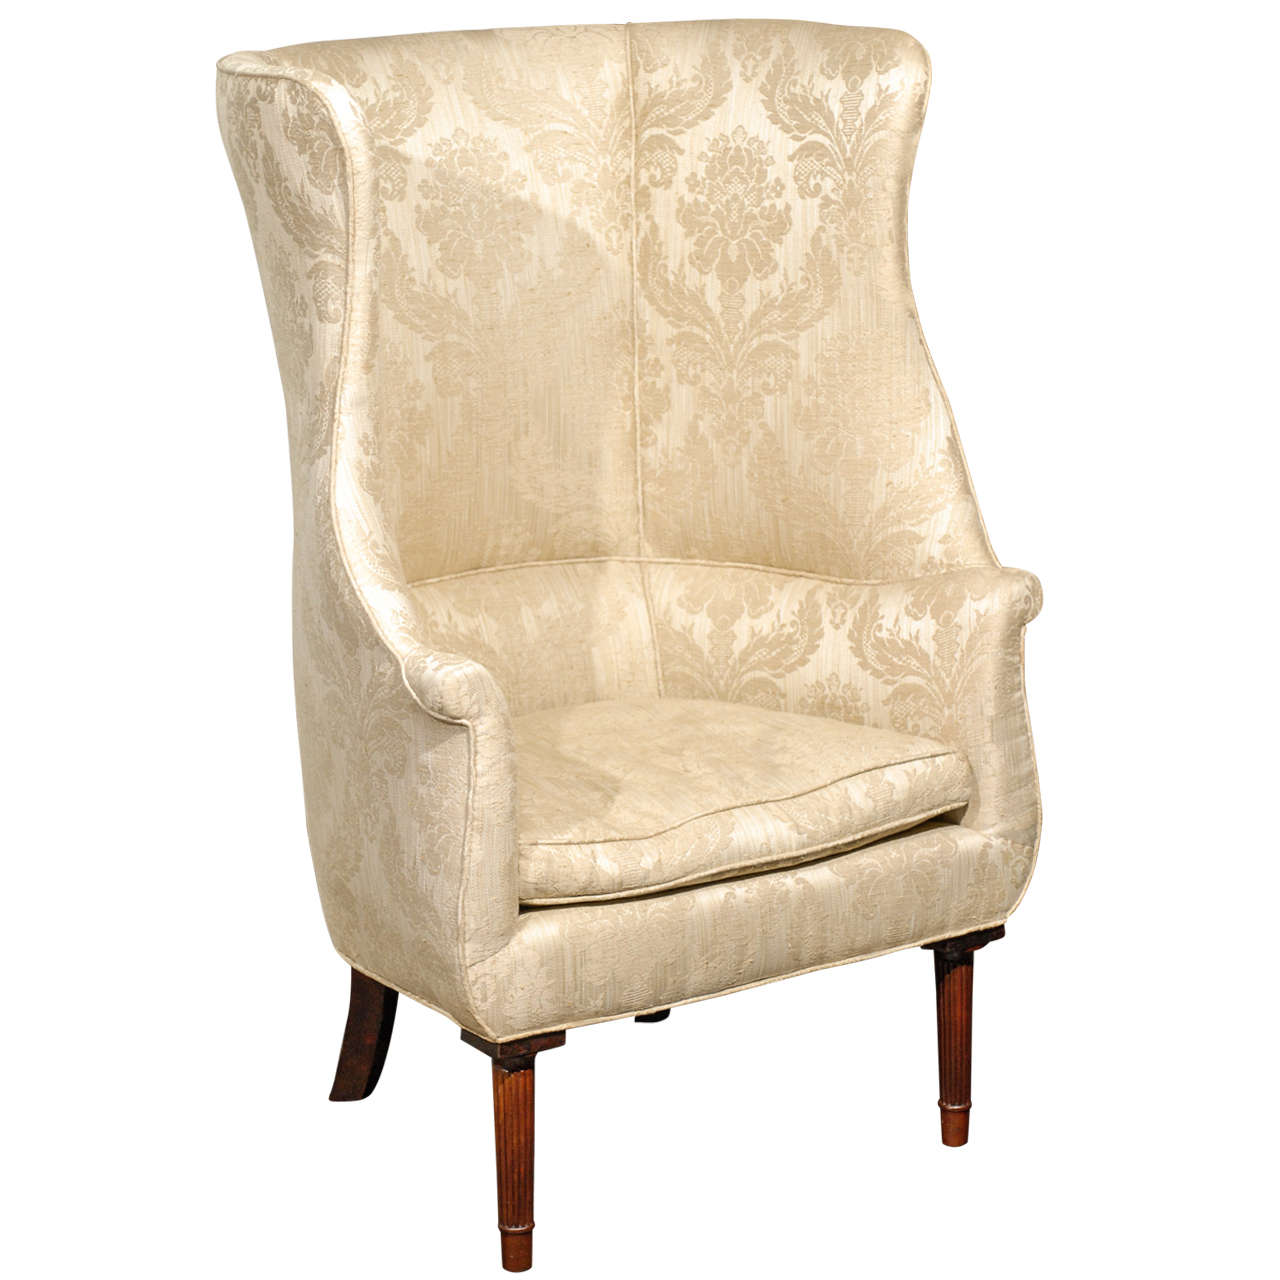 Antique Oversized Accent Chairs